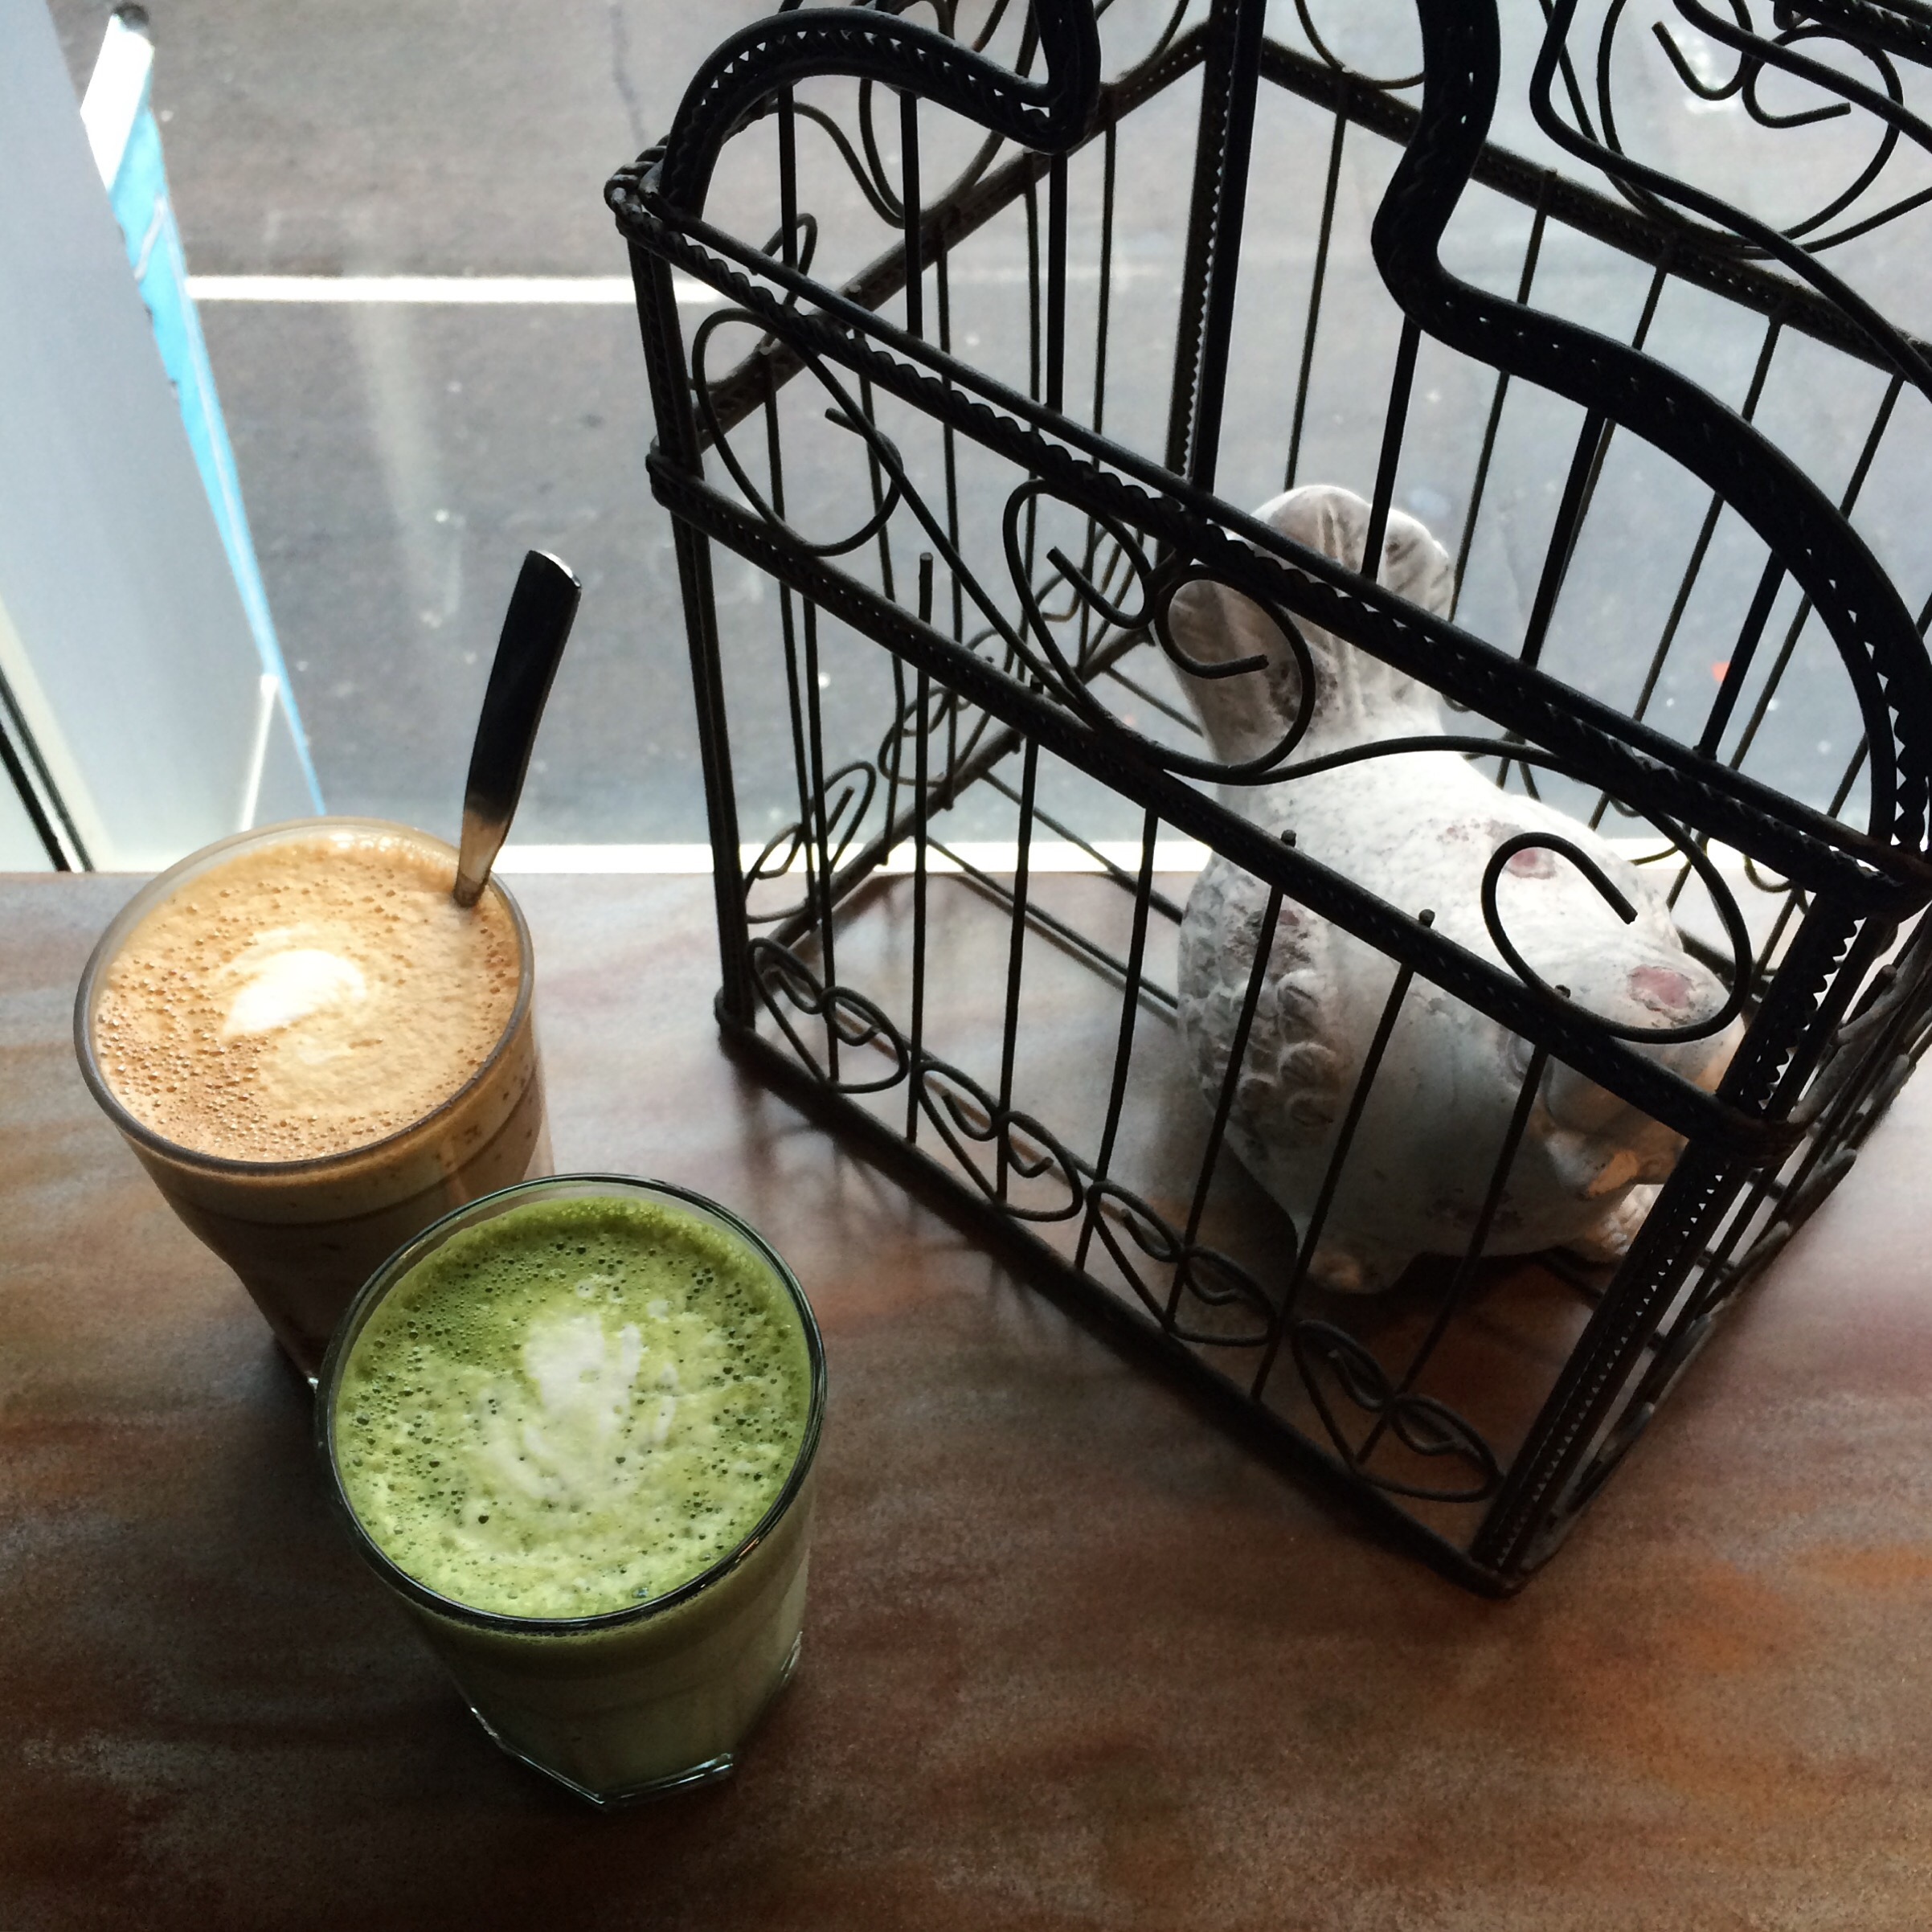 Matcha Latte at Black Canary